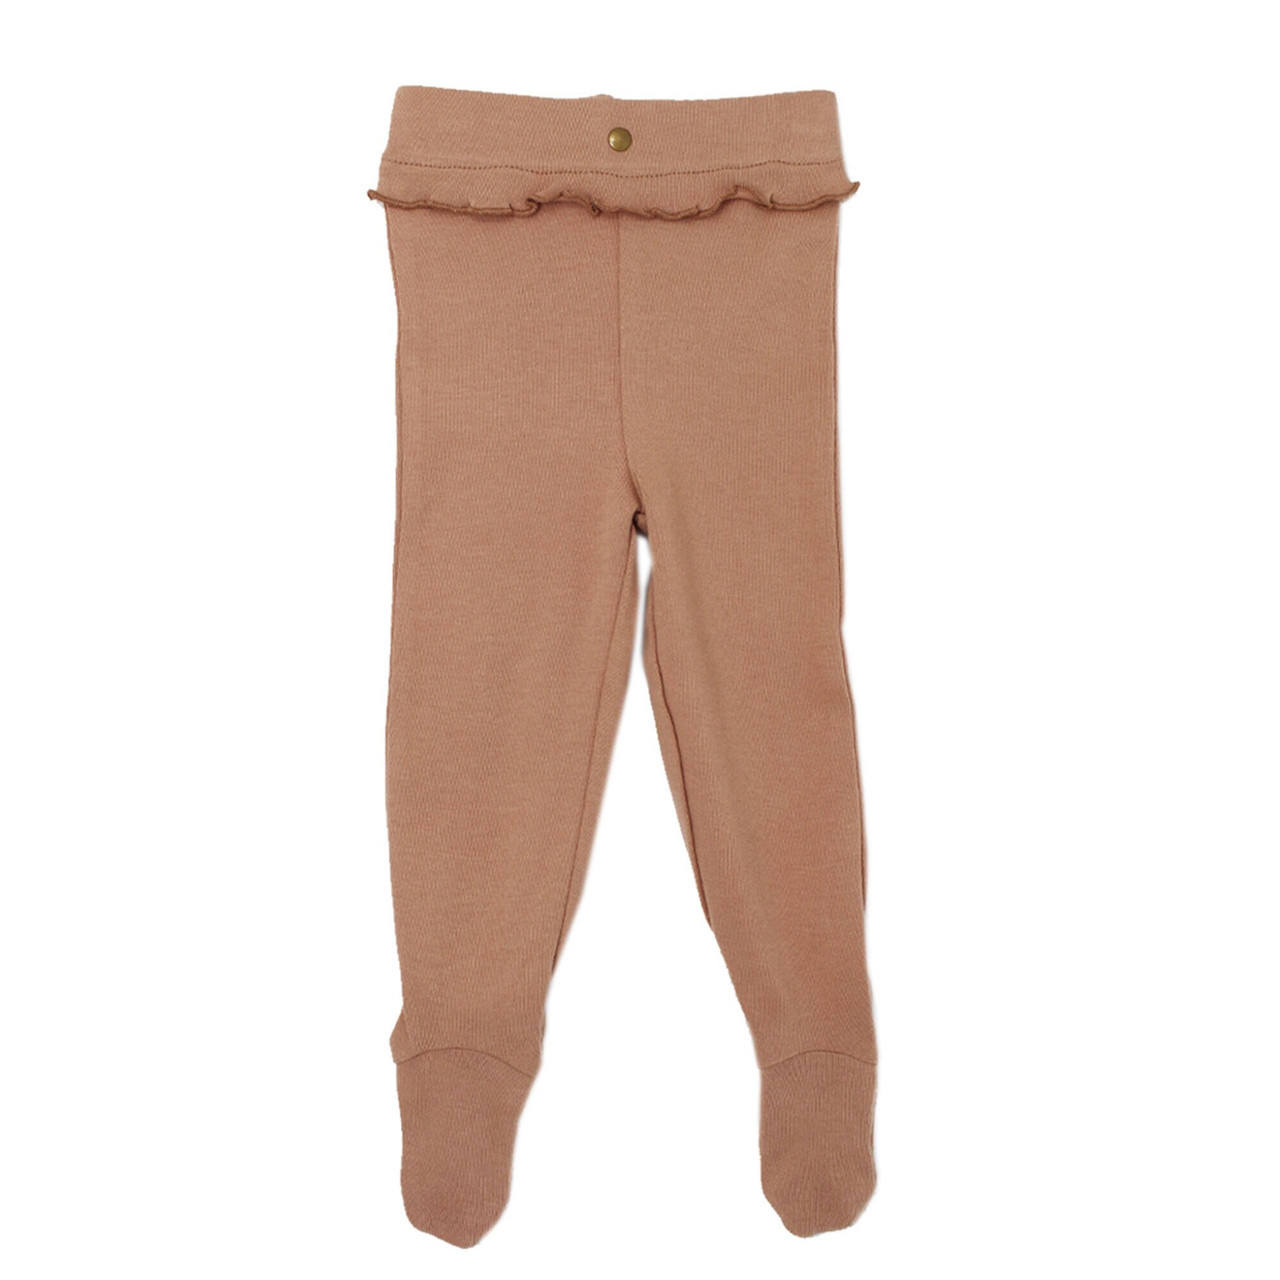 Organic Ruffle Footed Legging in Nutmeg (Up to 6-9m), Flat